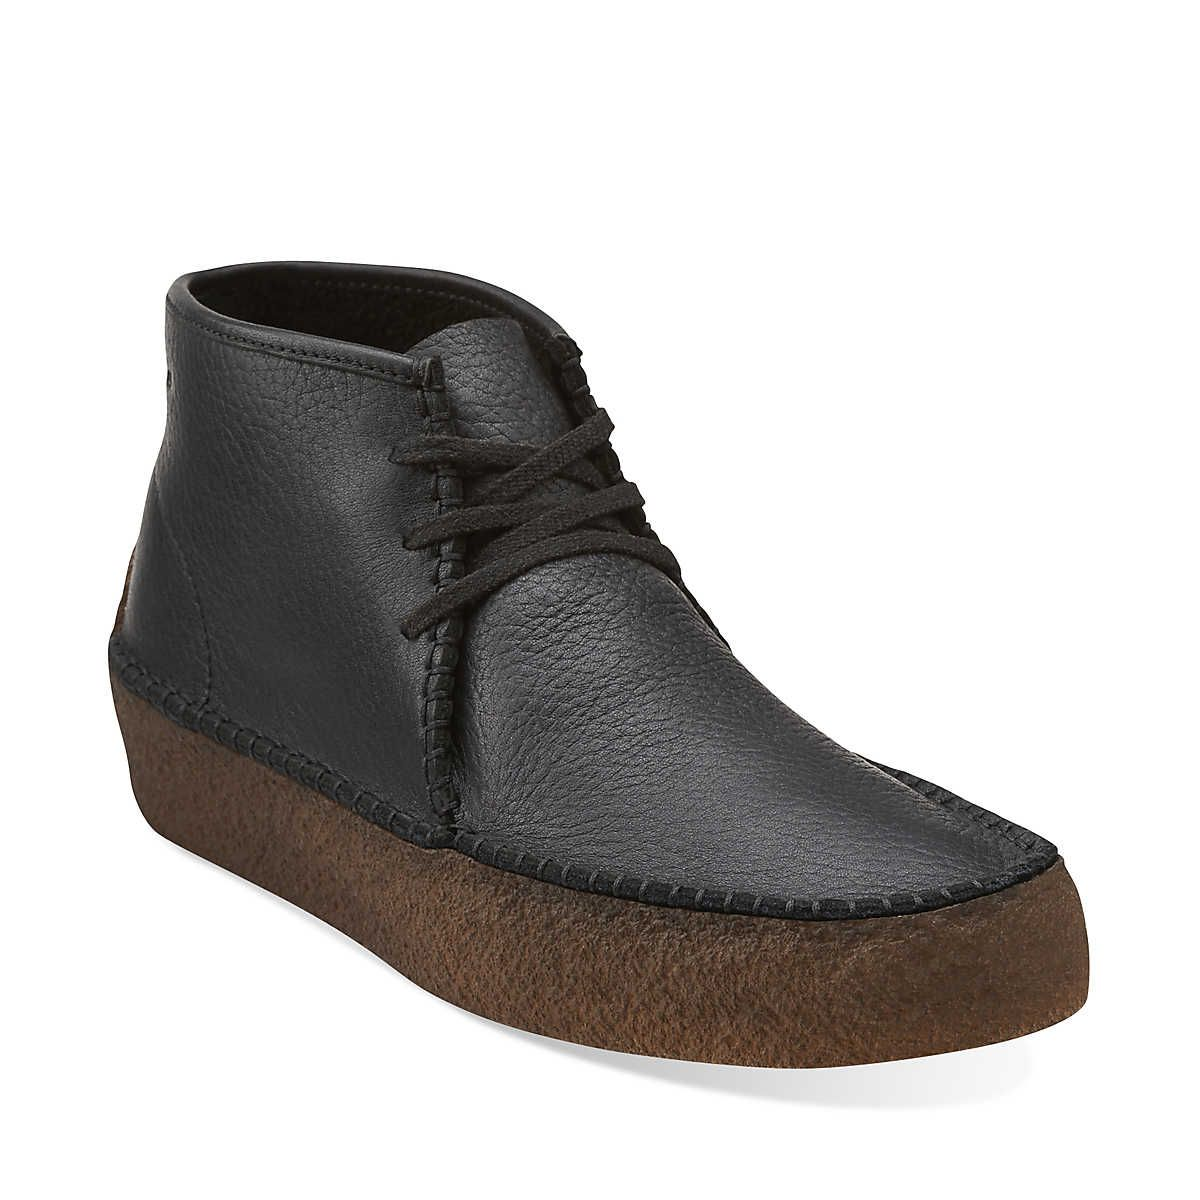 Wallabee Ridge In Black Tumbled Leather Mens Boots From